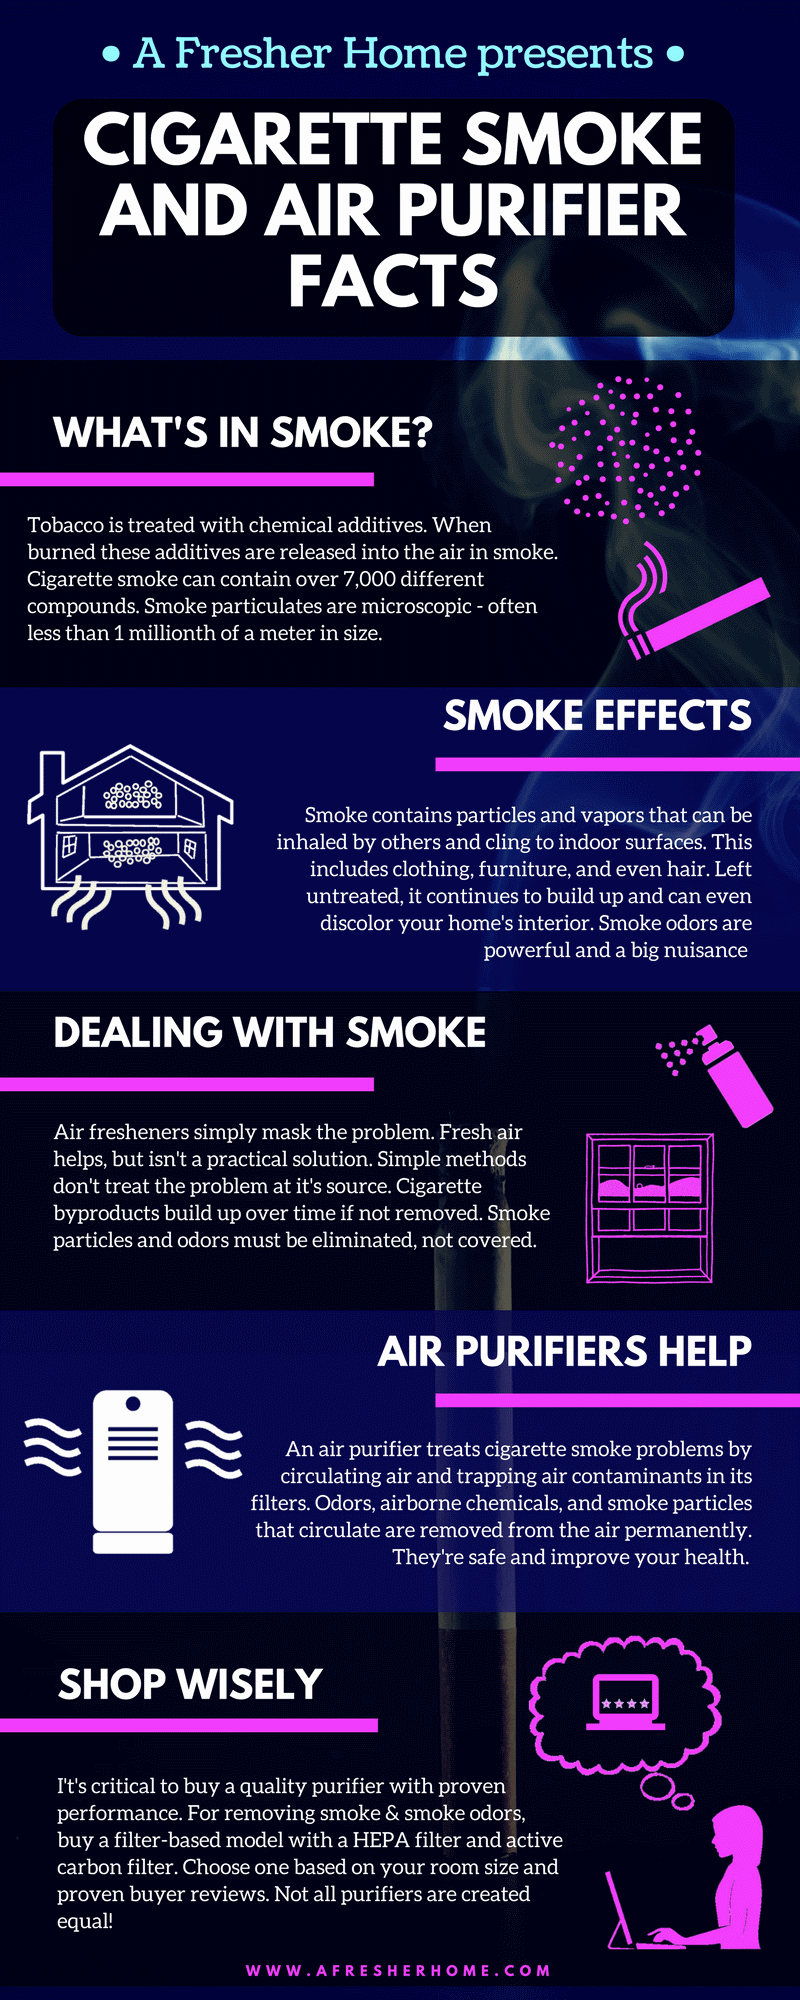 The Best Air Purifiers For Smoke - 5 Of The Best You Can Buy!